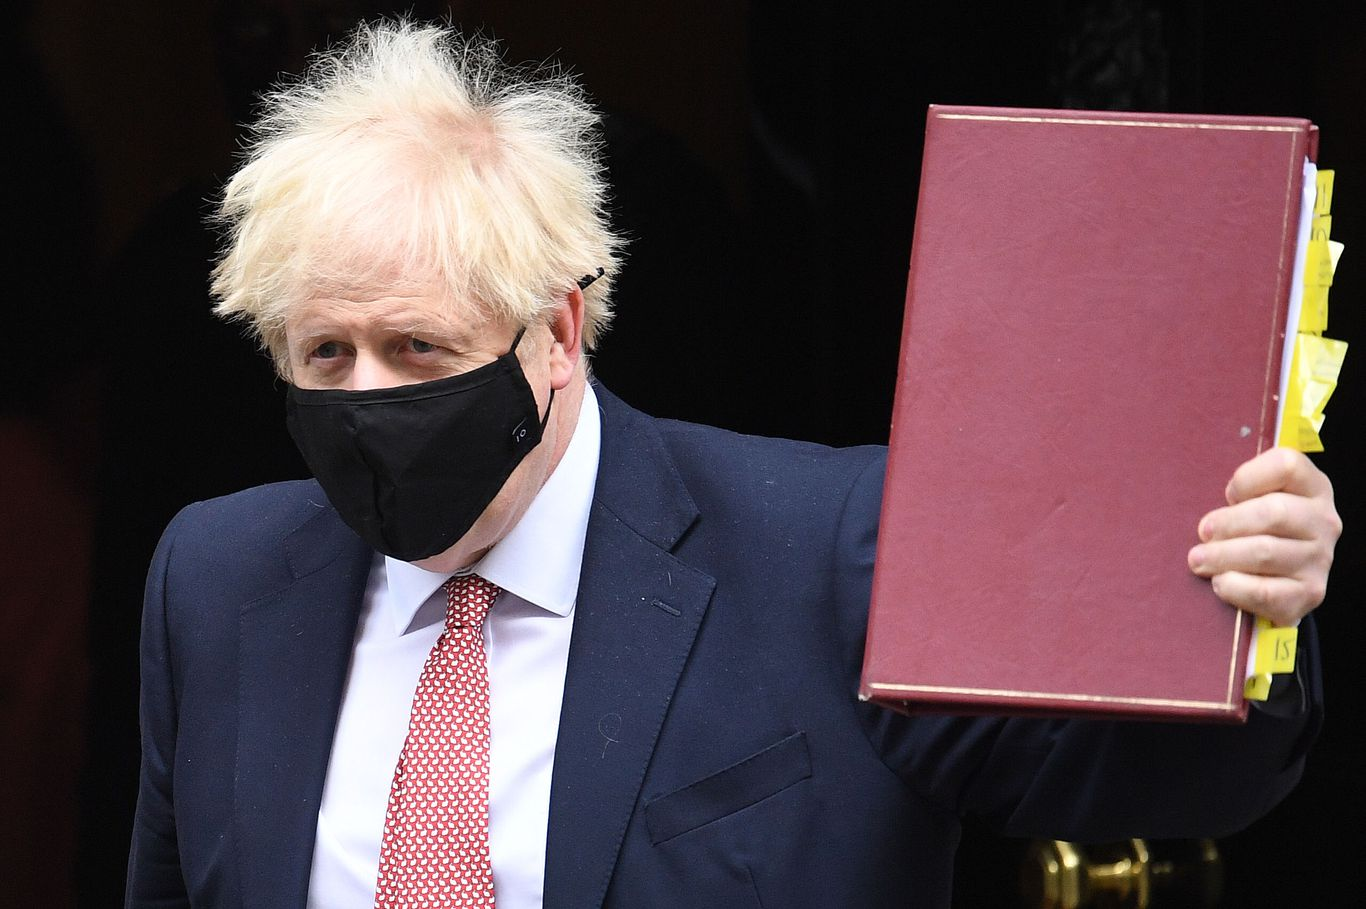 U K Pm Boris Johnson To Reveal 3 Tier Covid Lockdown System Axios Join to listen to great radio shows, dj mix sets and podcasts. u k pm boris johnson to reveal 3 tier